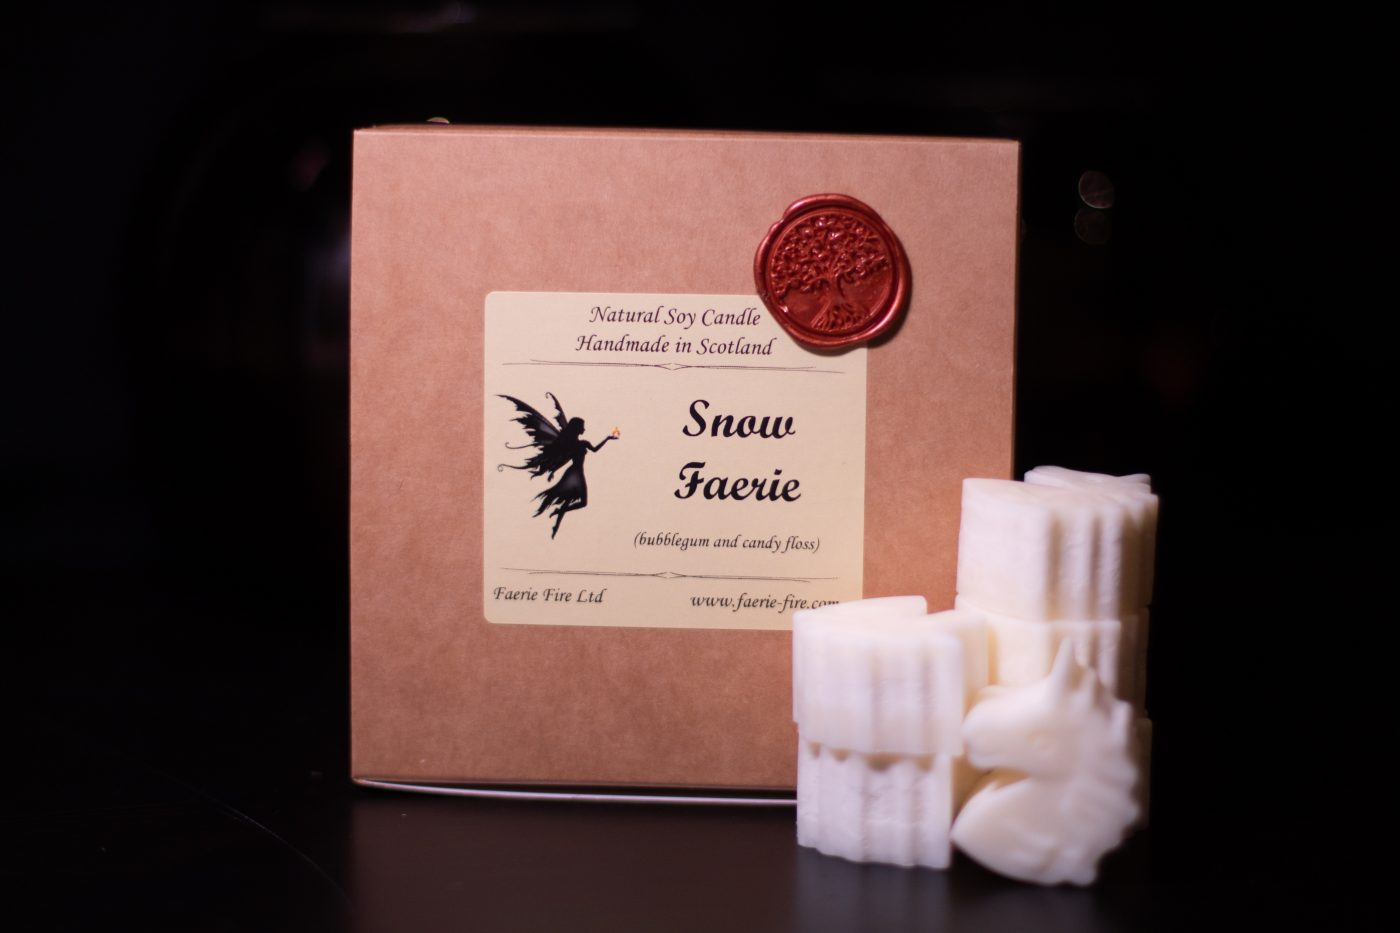 Snow Faerie Soy Wax Melts scaled